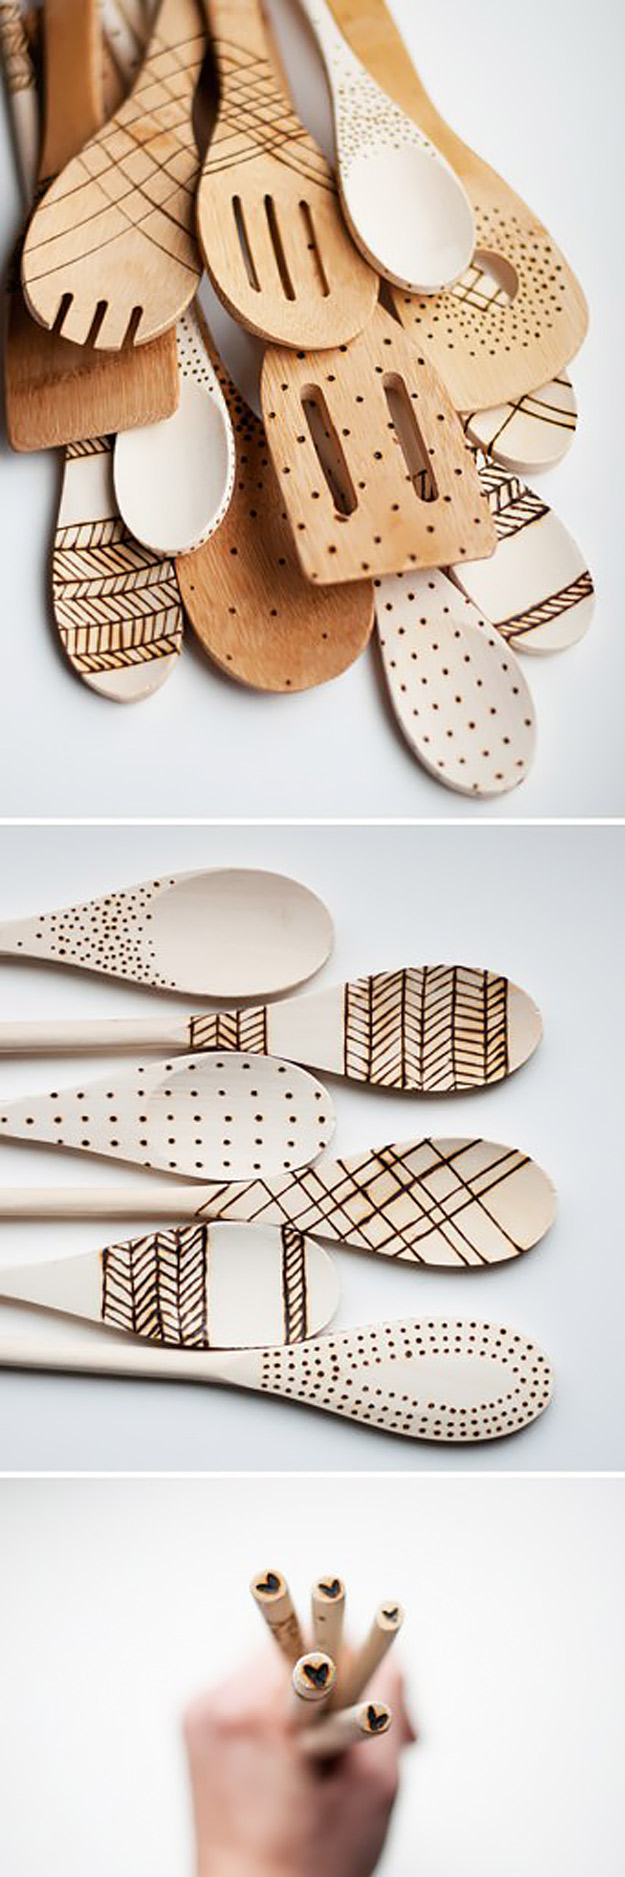 Expensive Looking DIY Wedding Gift Ideas - DIY Etched Wooden Spoons - Easy and Unique Homemade Gift Ideas for Bride and Groom - Cheap Presents You Can Make for the Couple- for the Home, From The Kids, Personalized Ideas for Parents and Bridesmaids | http://diyjoy.com/cheap-diy-wedding-gifts